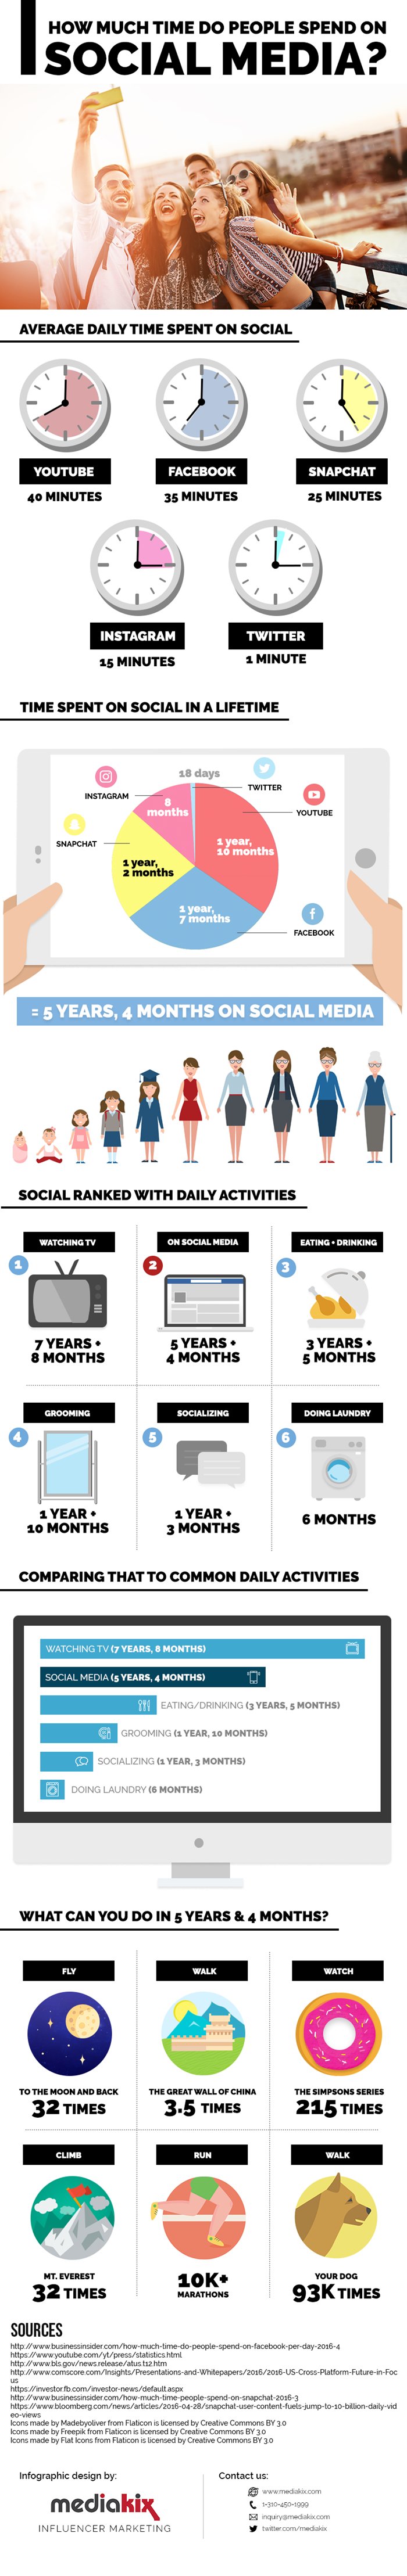 how-much-time-is-spent-on-social-media1-700